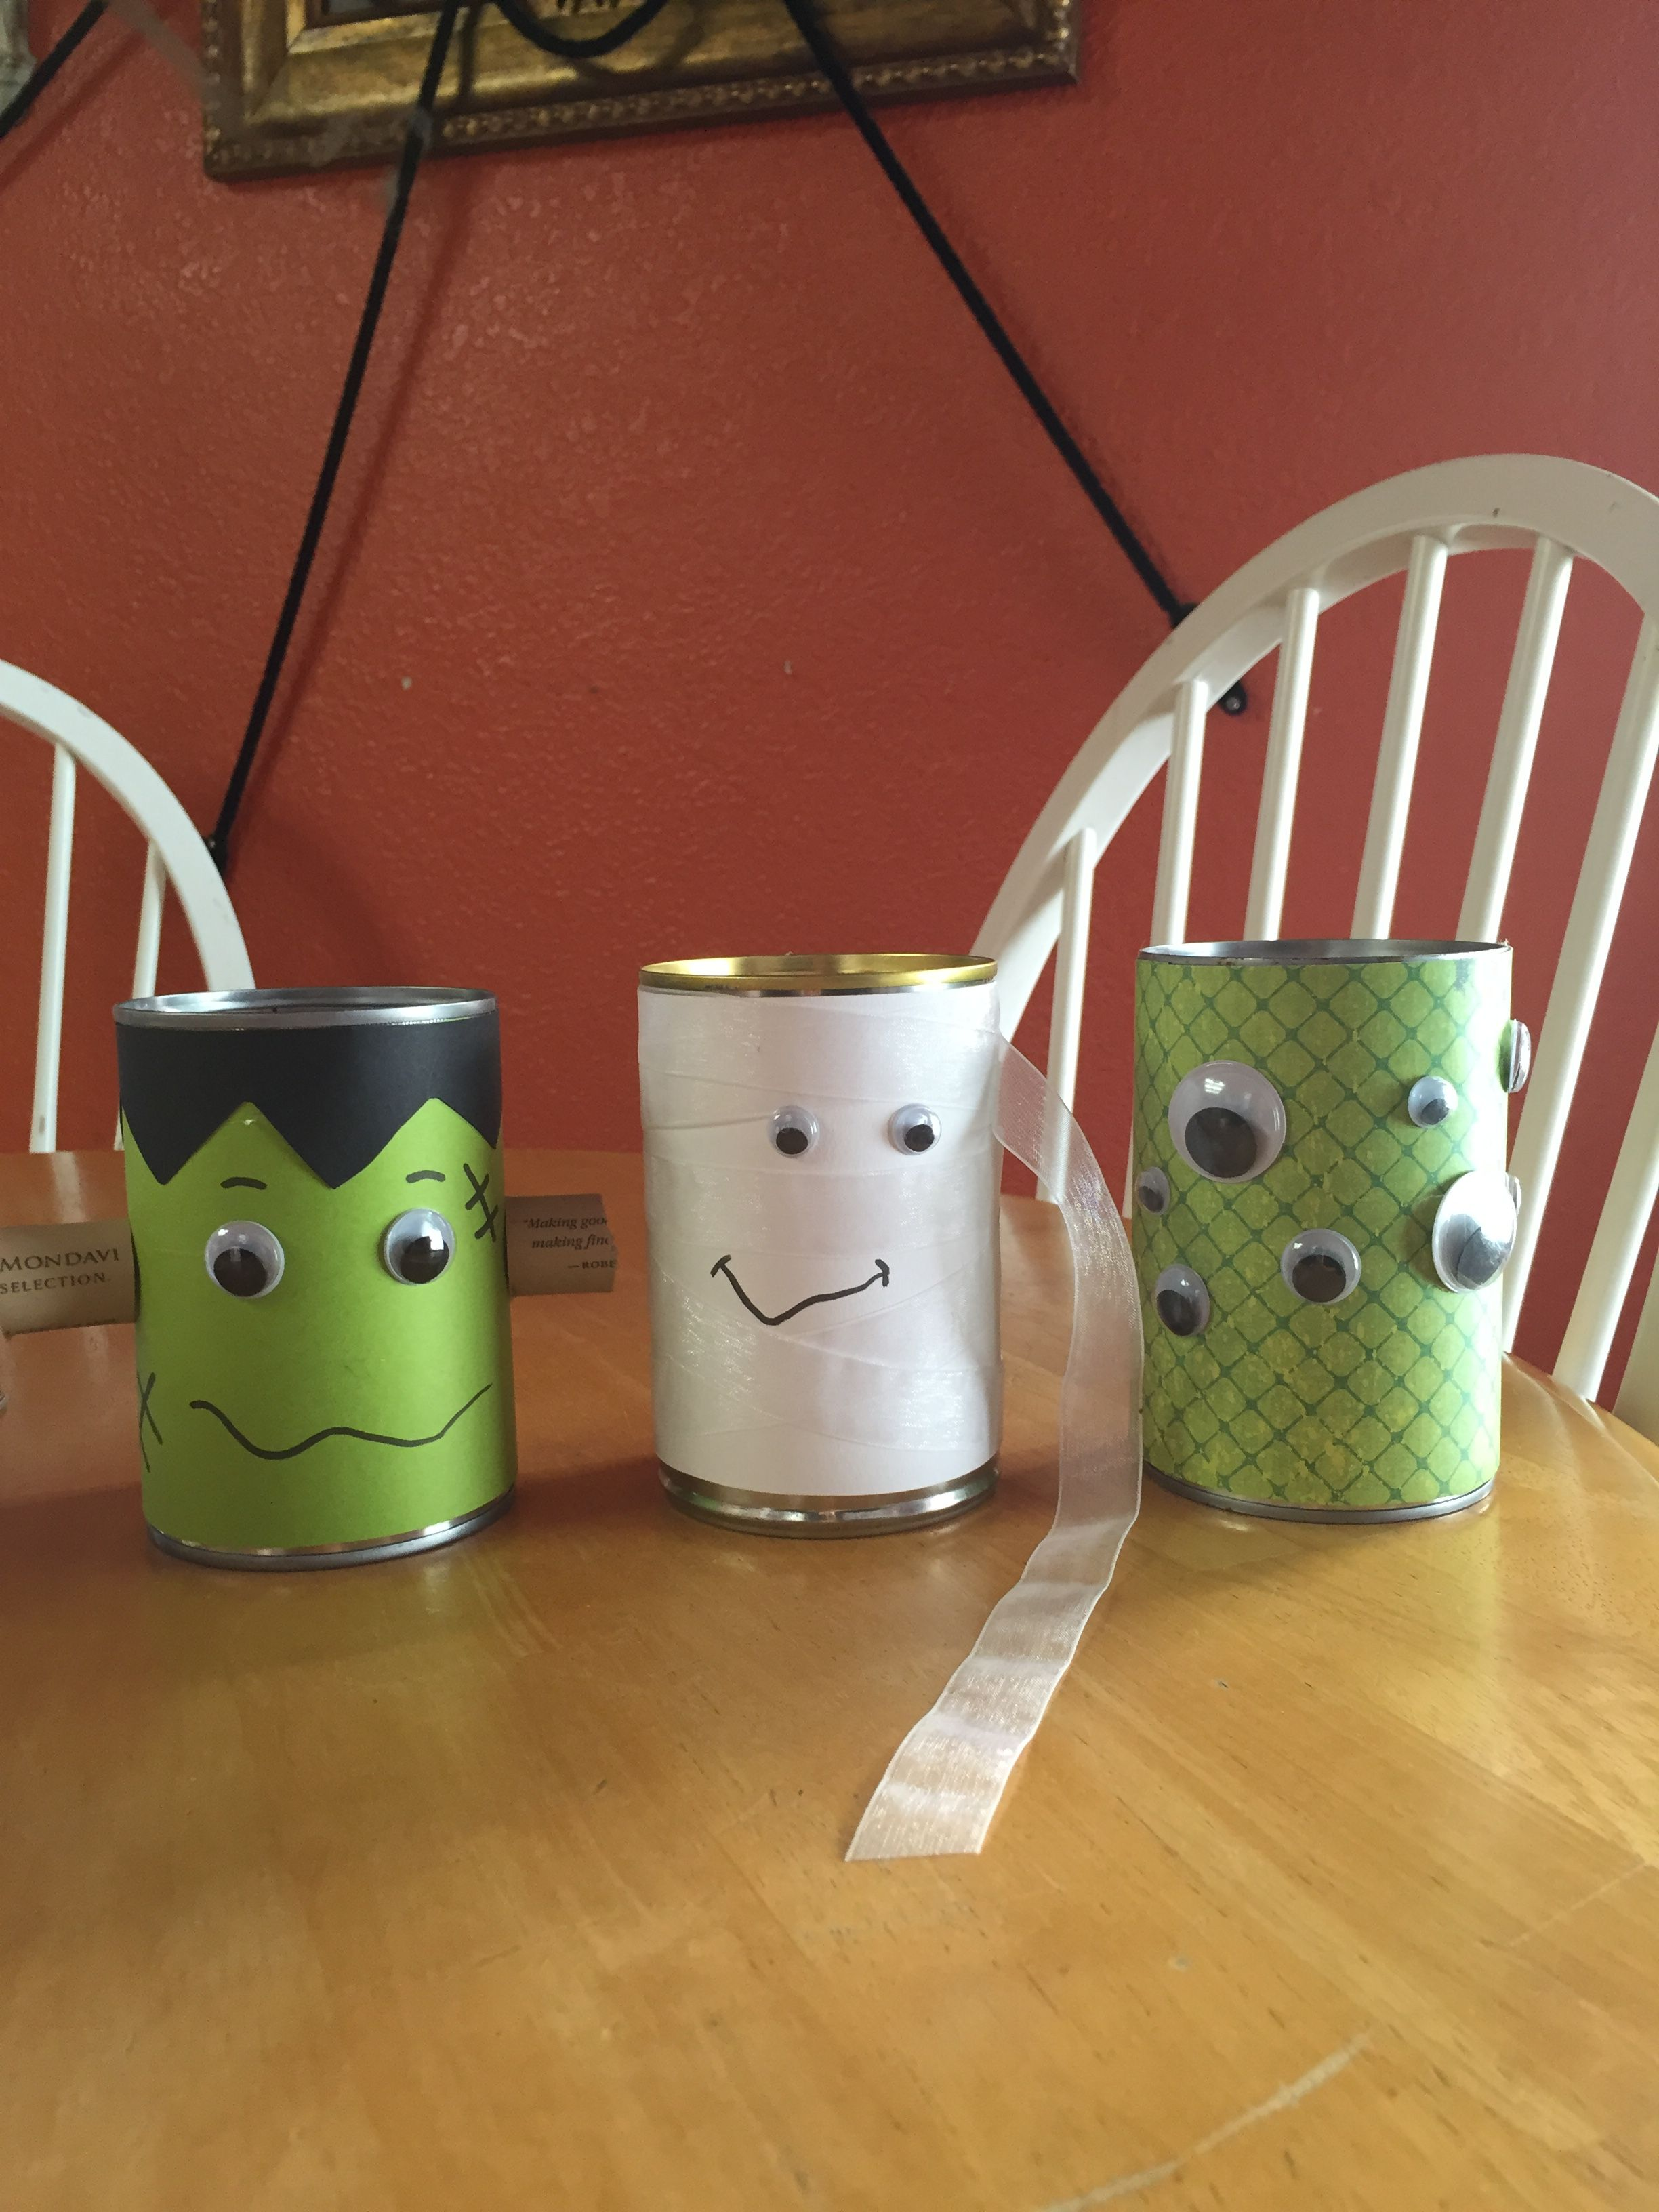 Halloween cutlery holders. I made these out of cans and paperback. I used transparent fabric ribbon for the mummy and Googley eyes on all cans. I also use a wine cork for frankensteins neck piece. I got glued everything on.